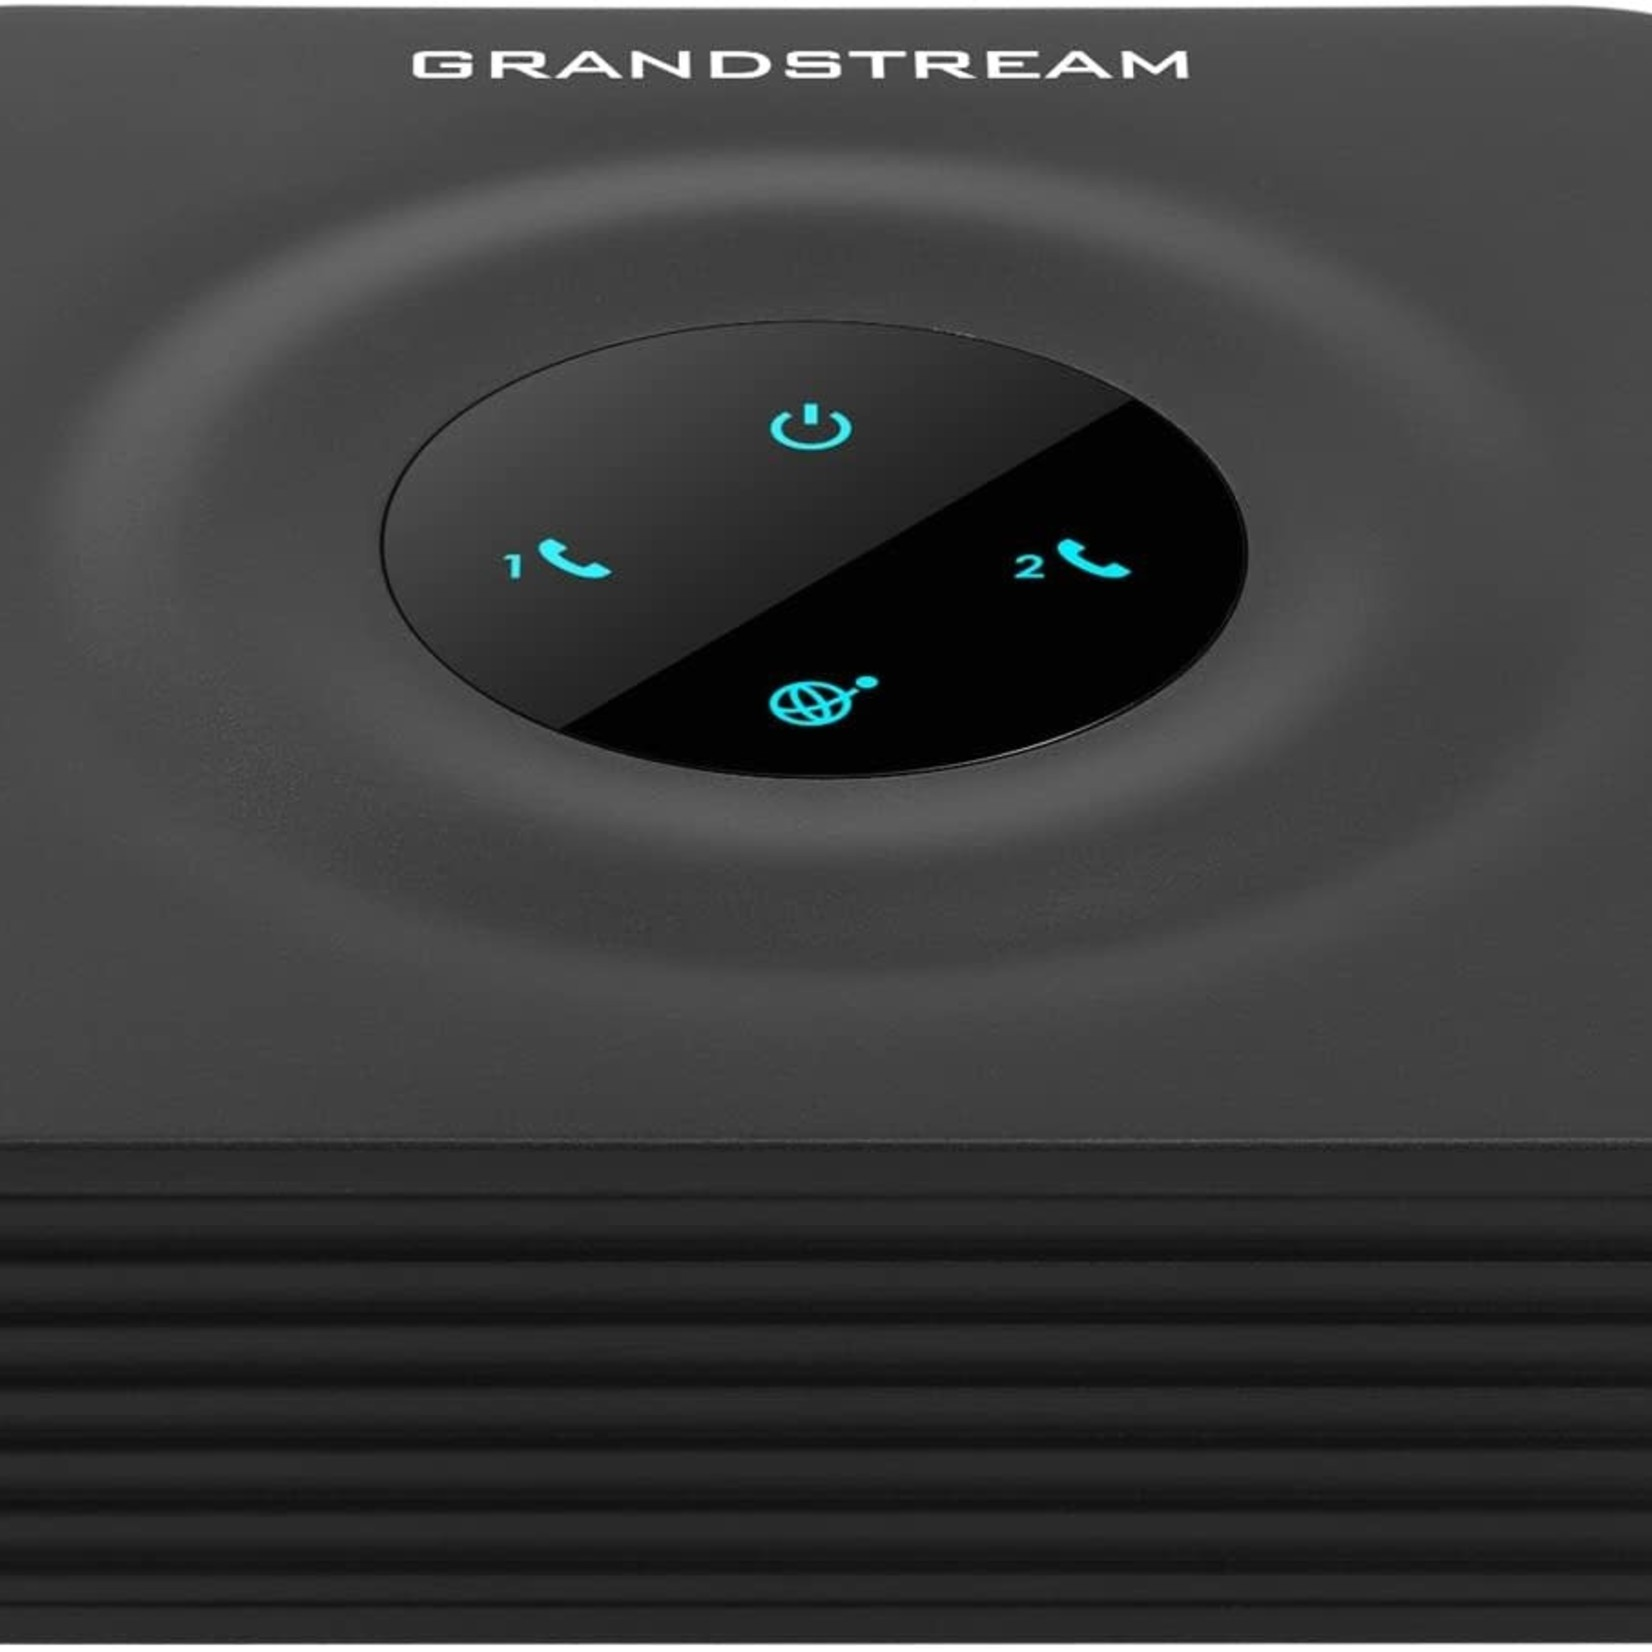 Grandstream GS-HT802 2 Port Analog Telephone Adapter VoIP Phone & Device